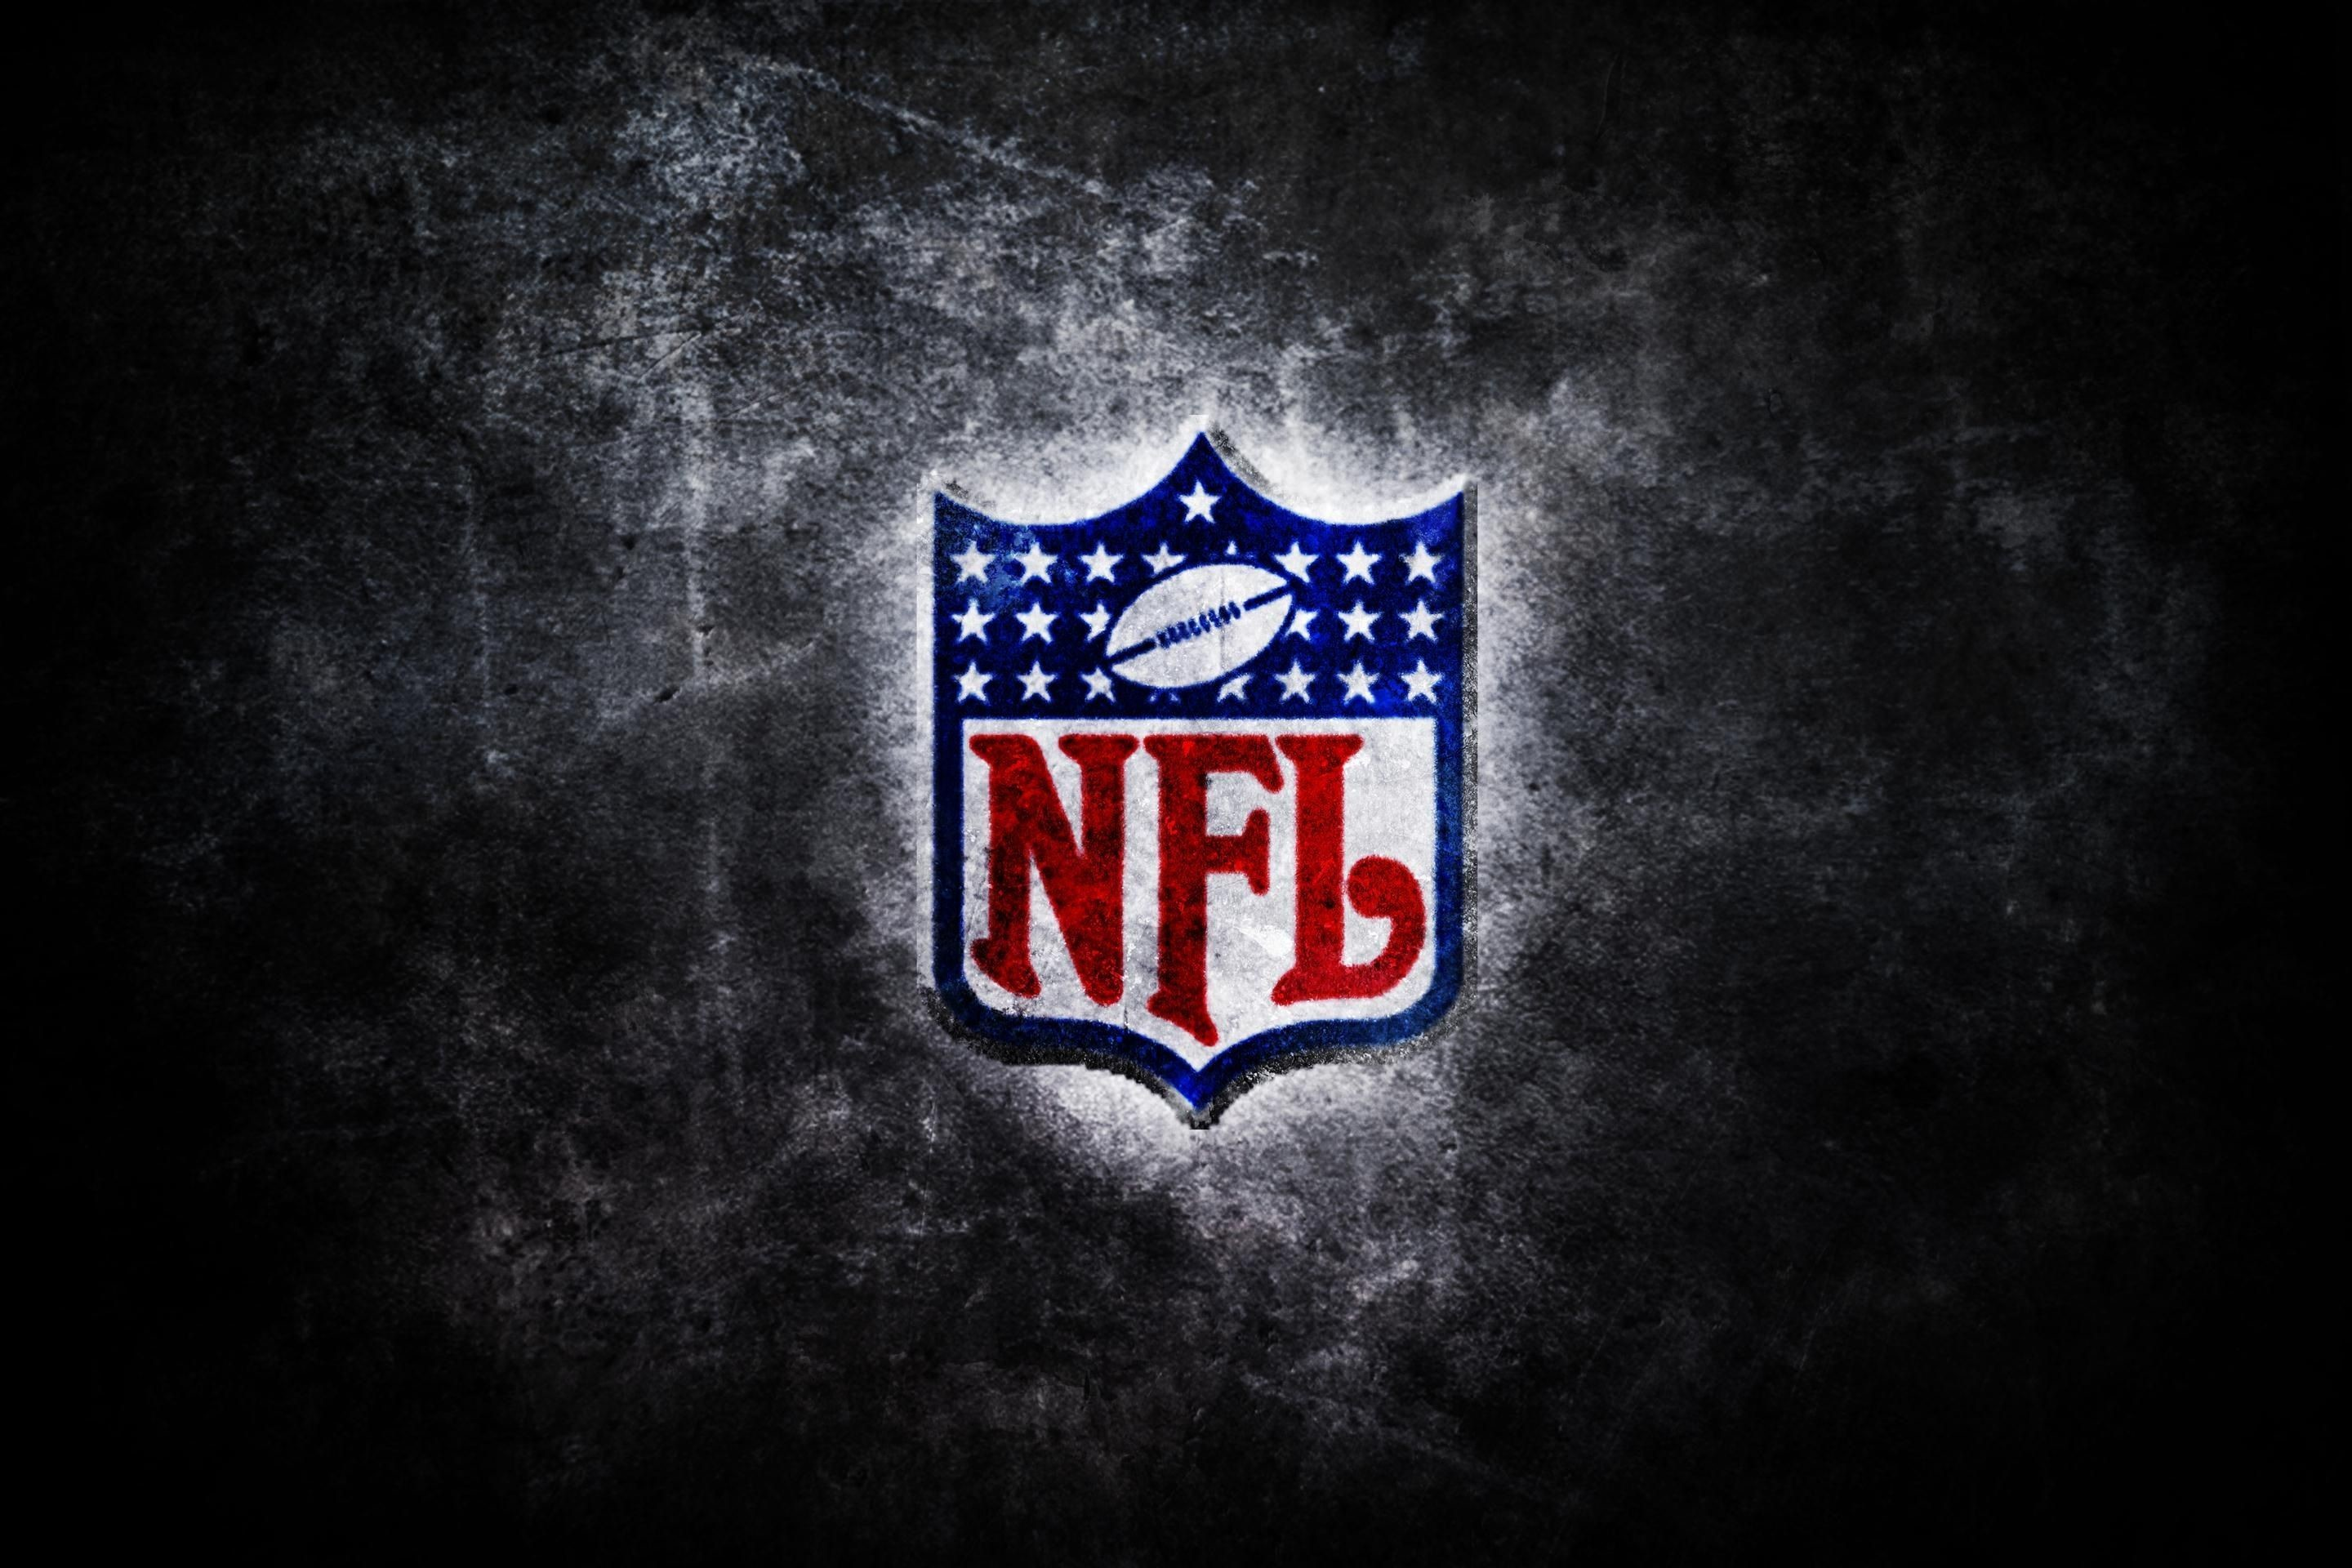 2880x1920 0 Cool NFL Football Wallpapers Cool NFL Football Wallpapers